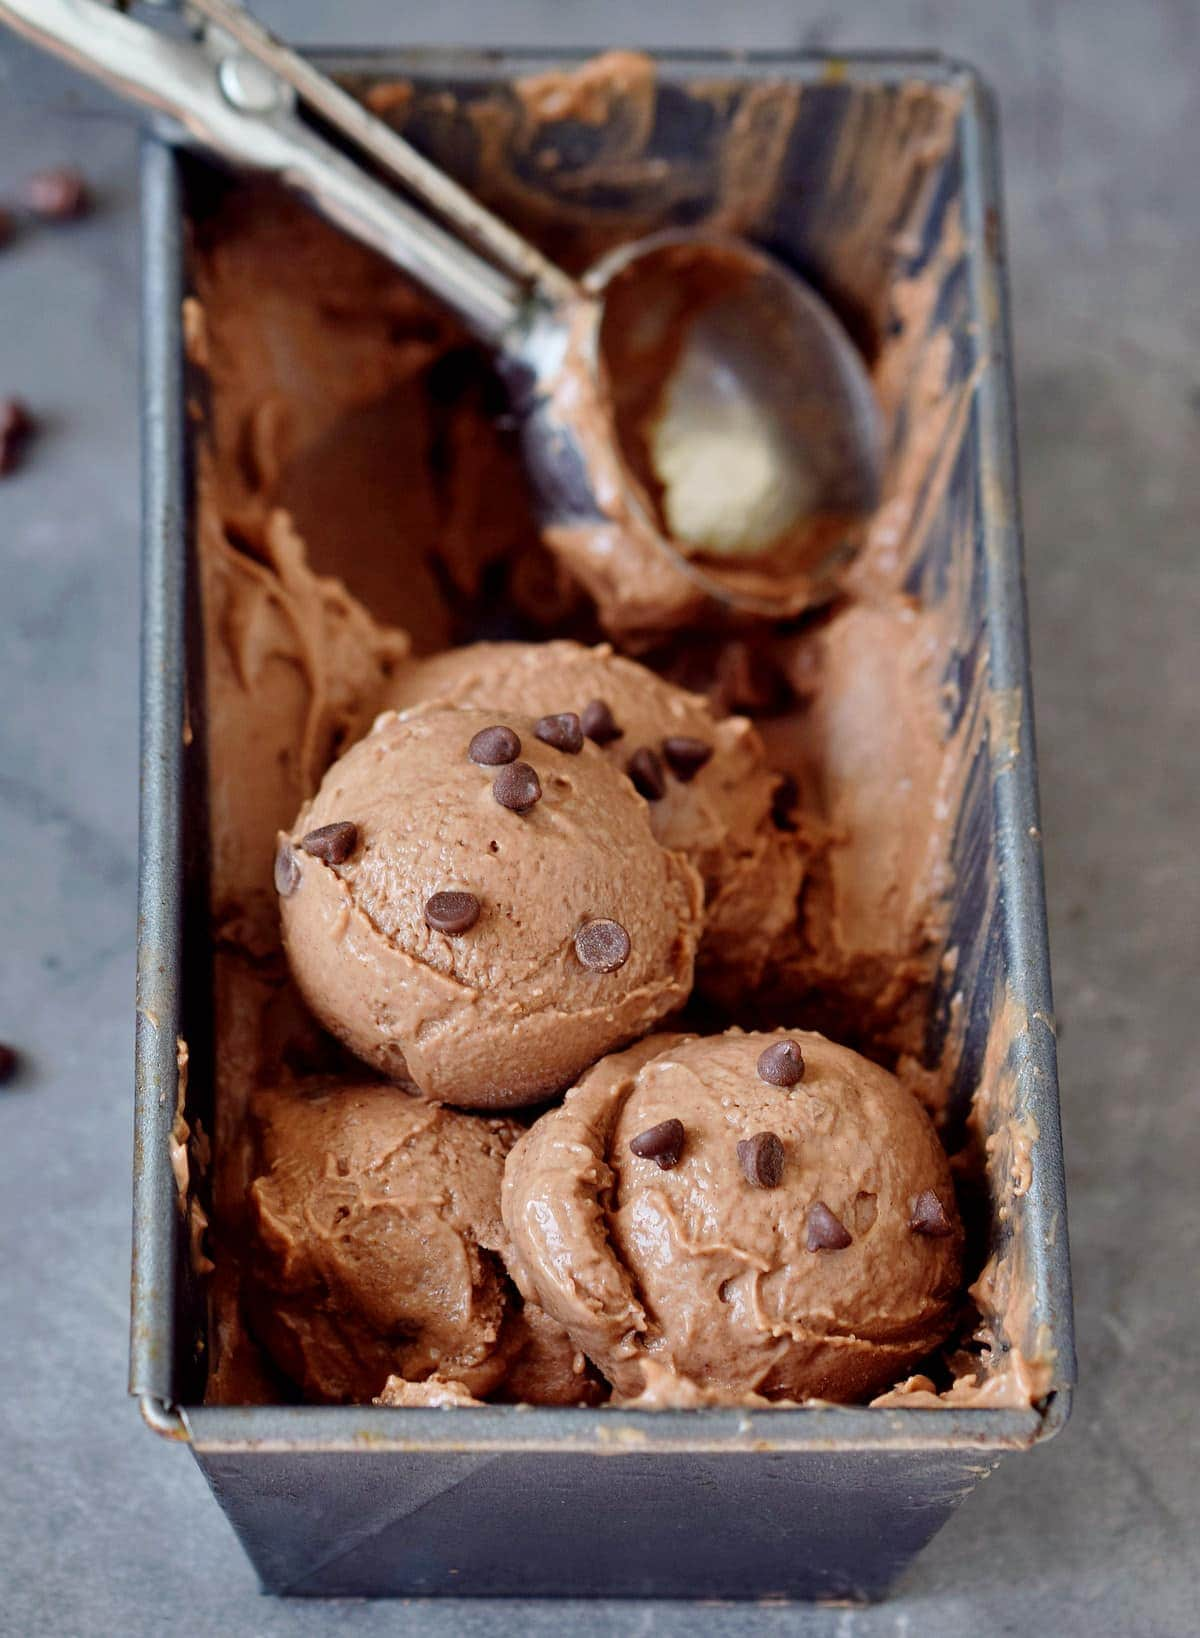 scoops of dairy free chocolate ice cream